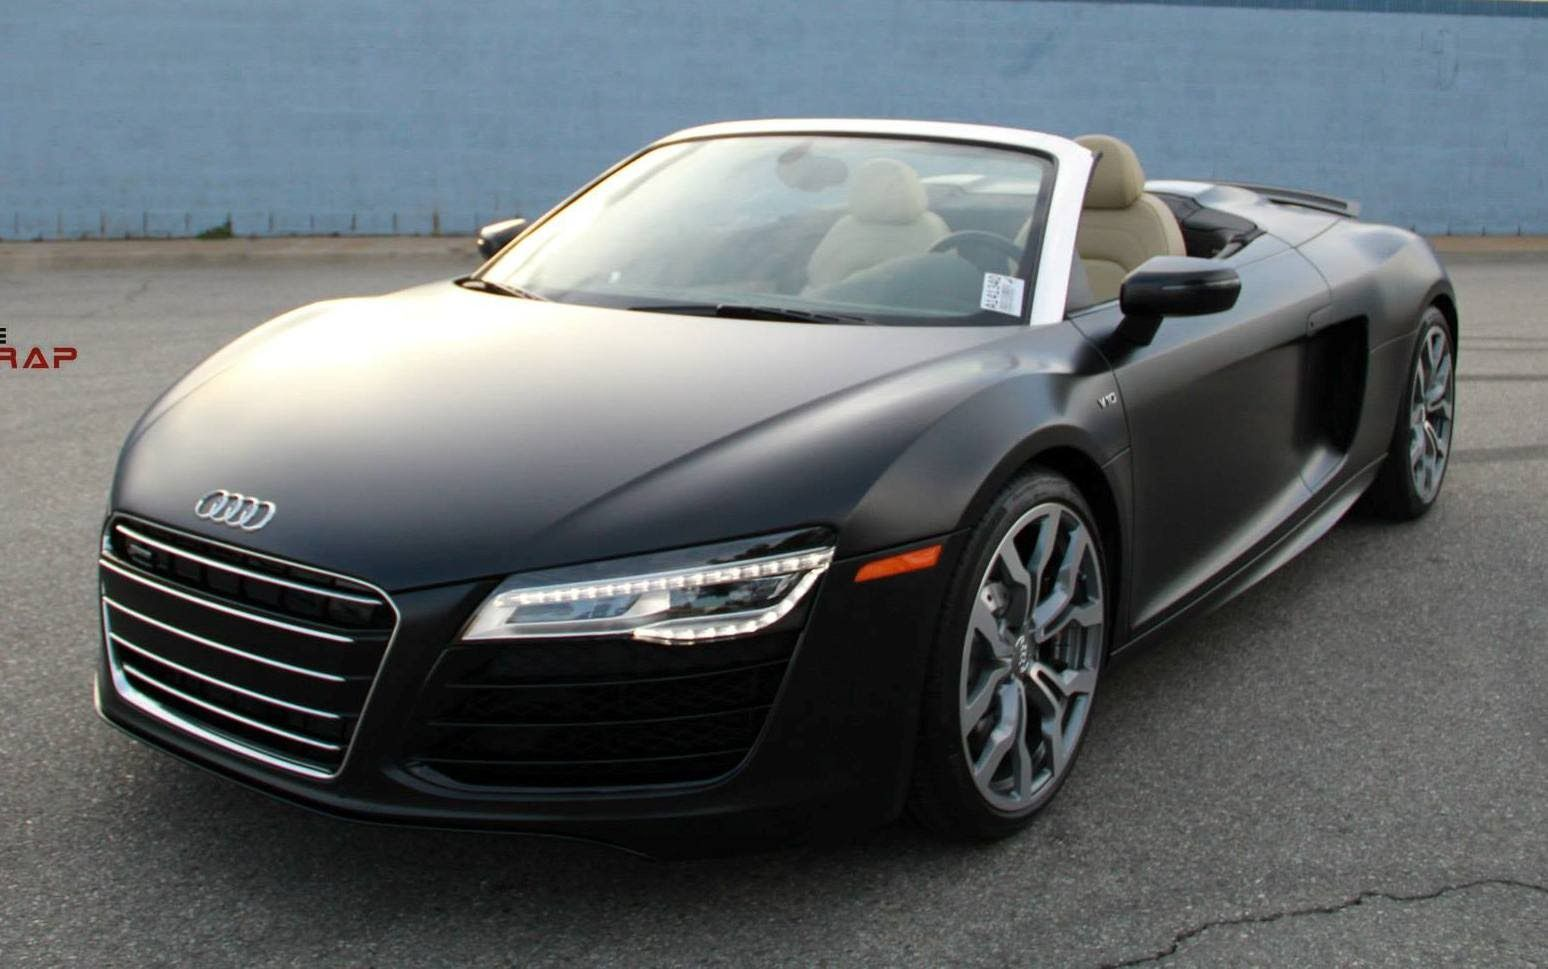 2015 audi r8 spyder by impressive wrap audi pinterest audi r8 audi and dream cars. Black Bedroom Furniture Sets. Home Design Ideas